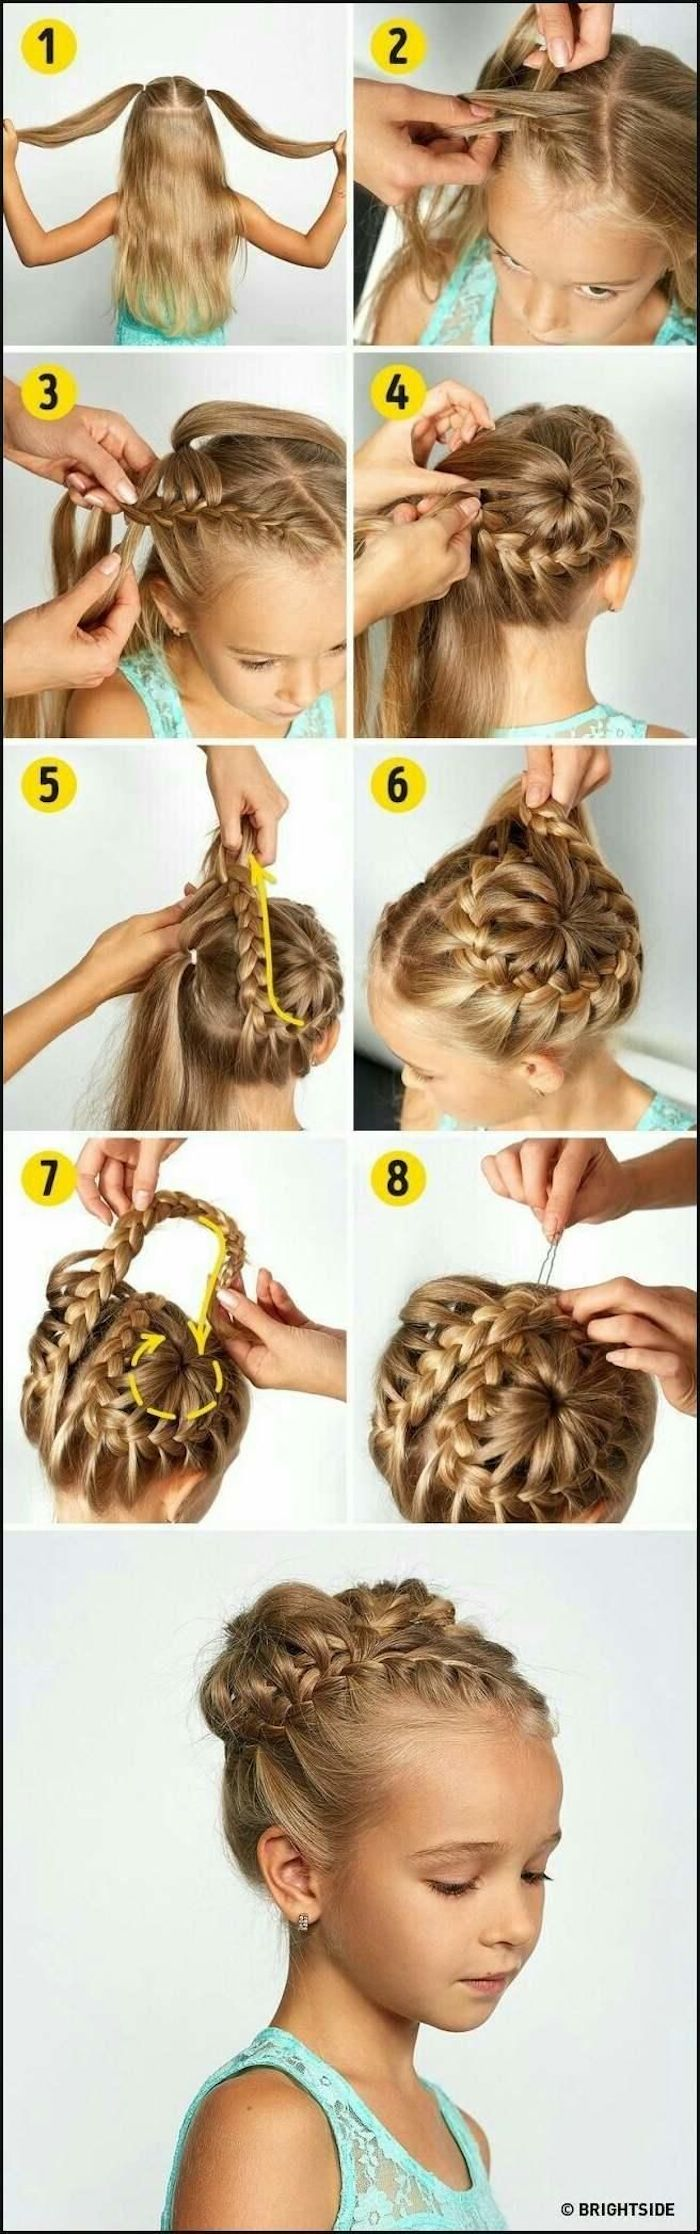 turquoise top, braid hairstyles for kids, long blonde hair, in a braided bun, white background